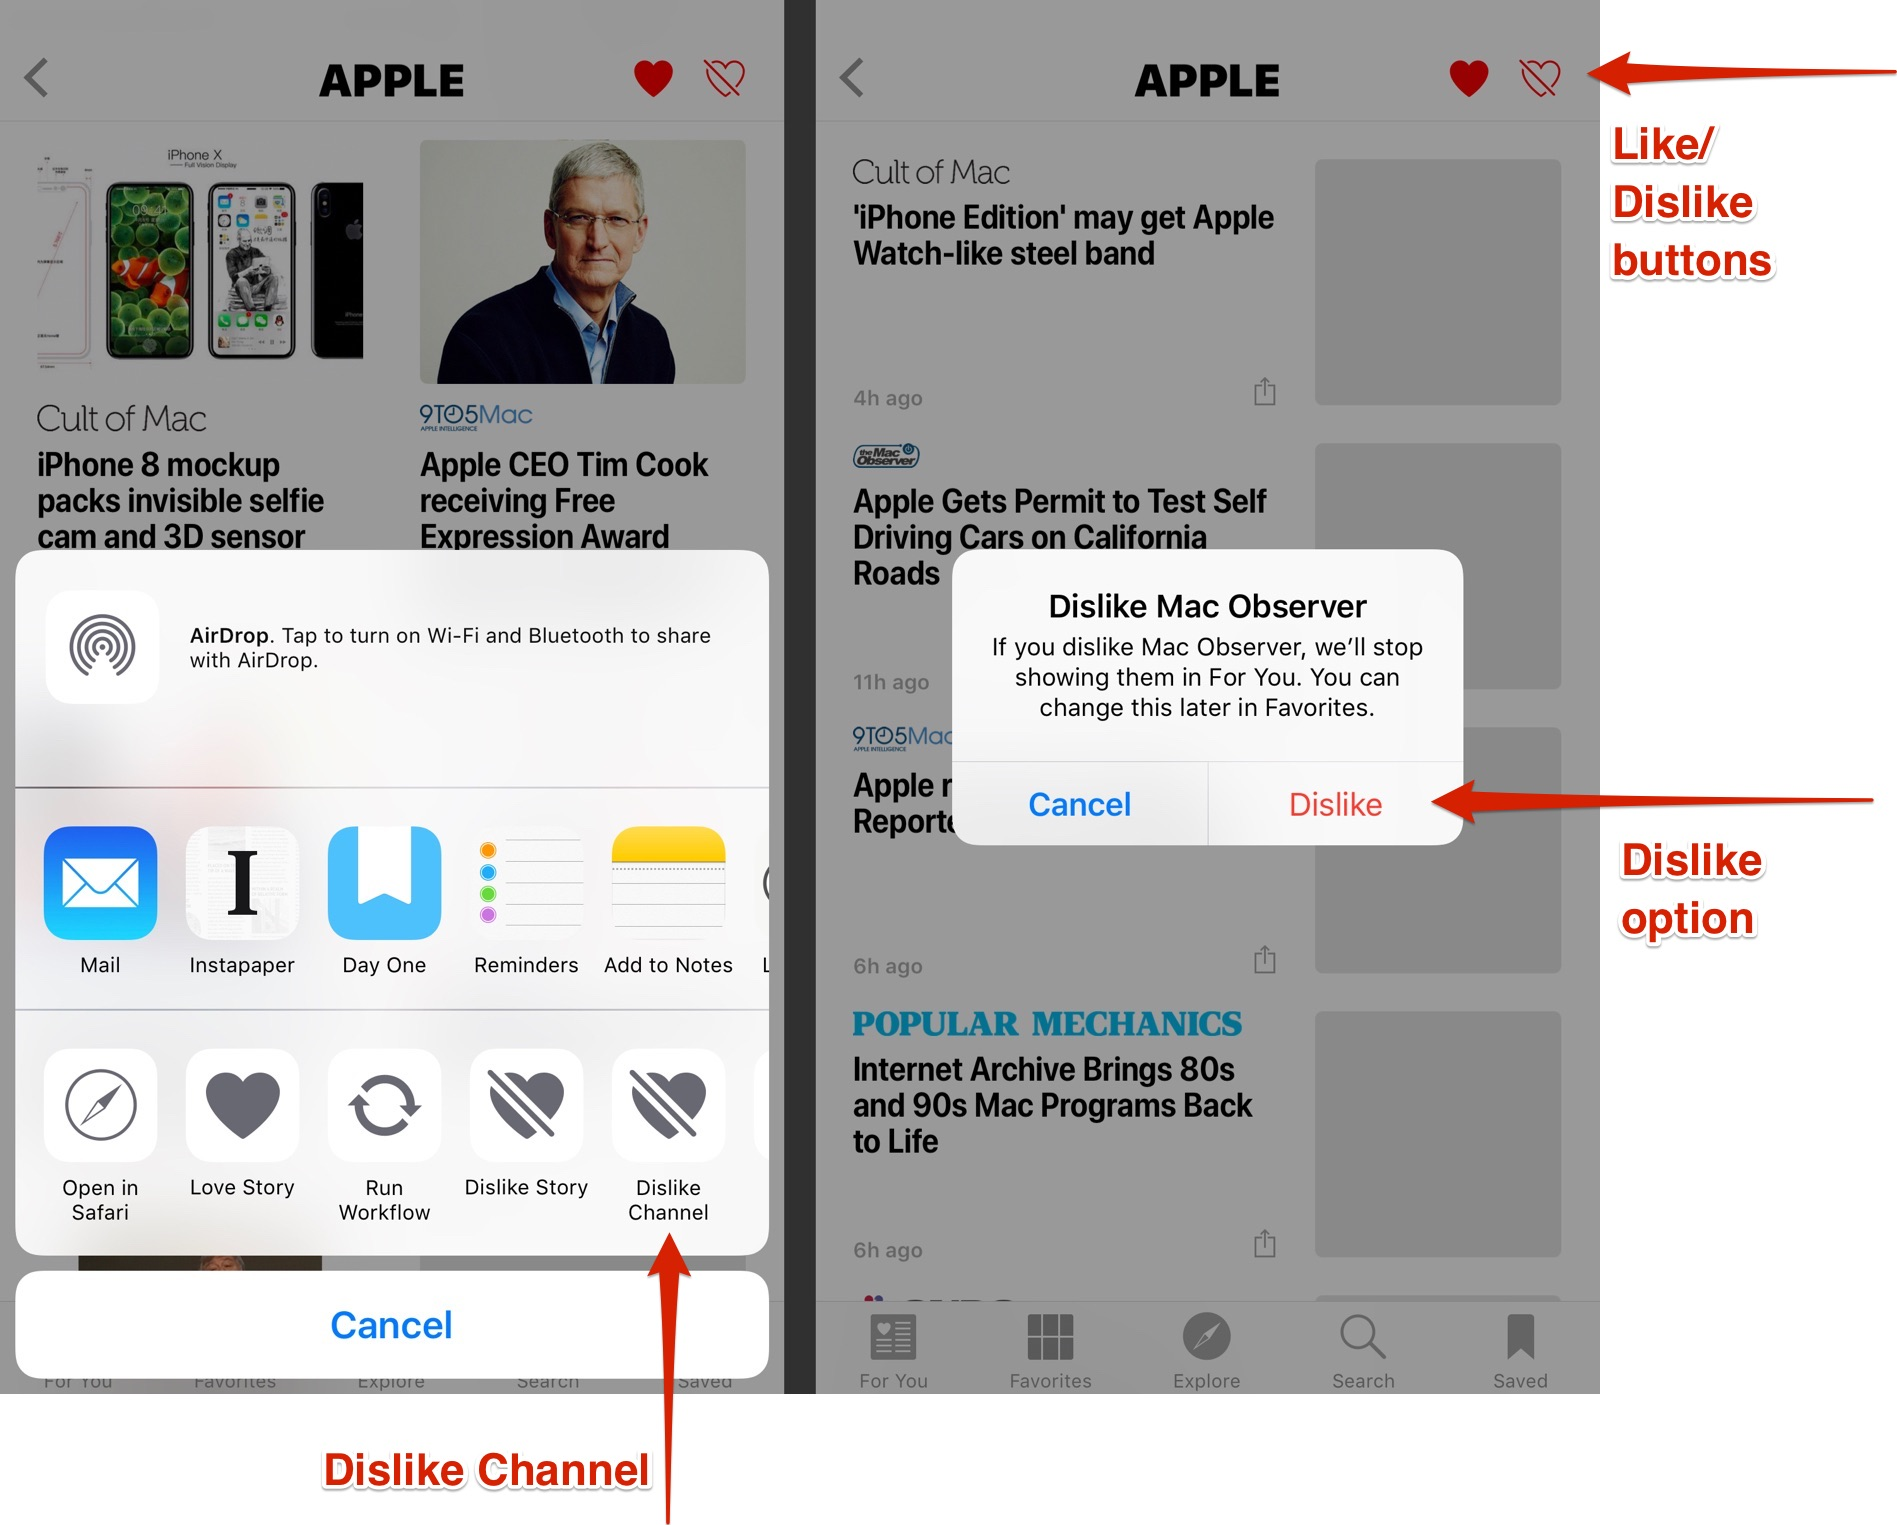 Steps to dislike a news source in Apple News